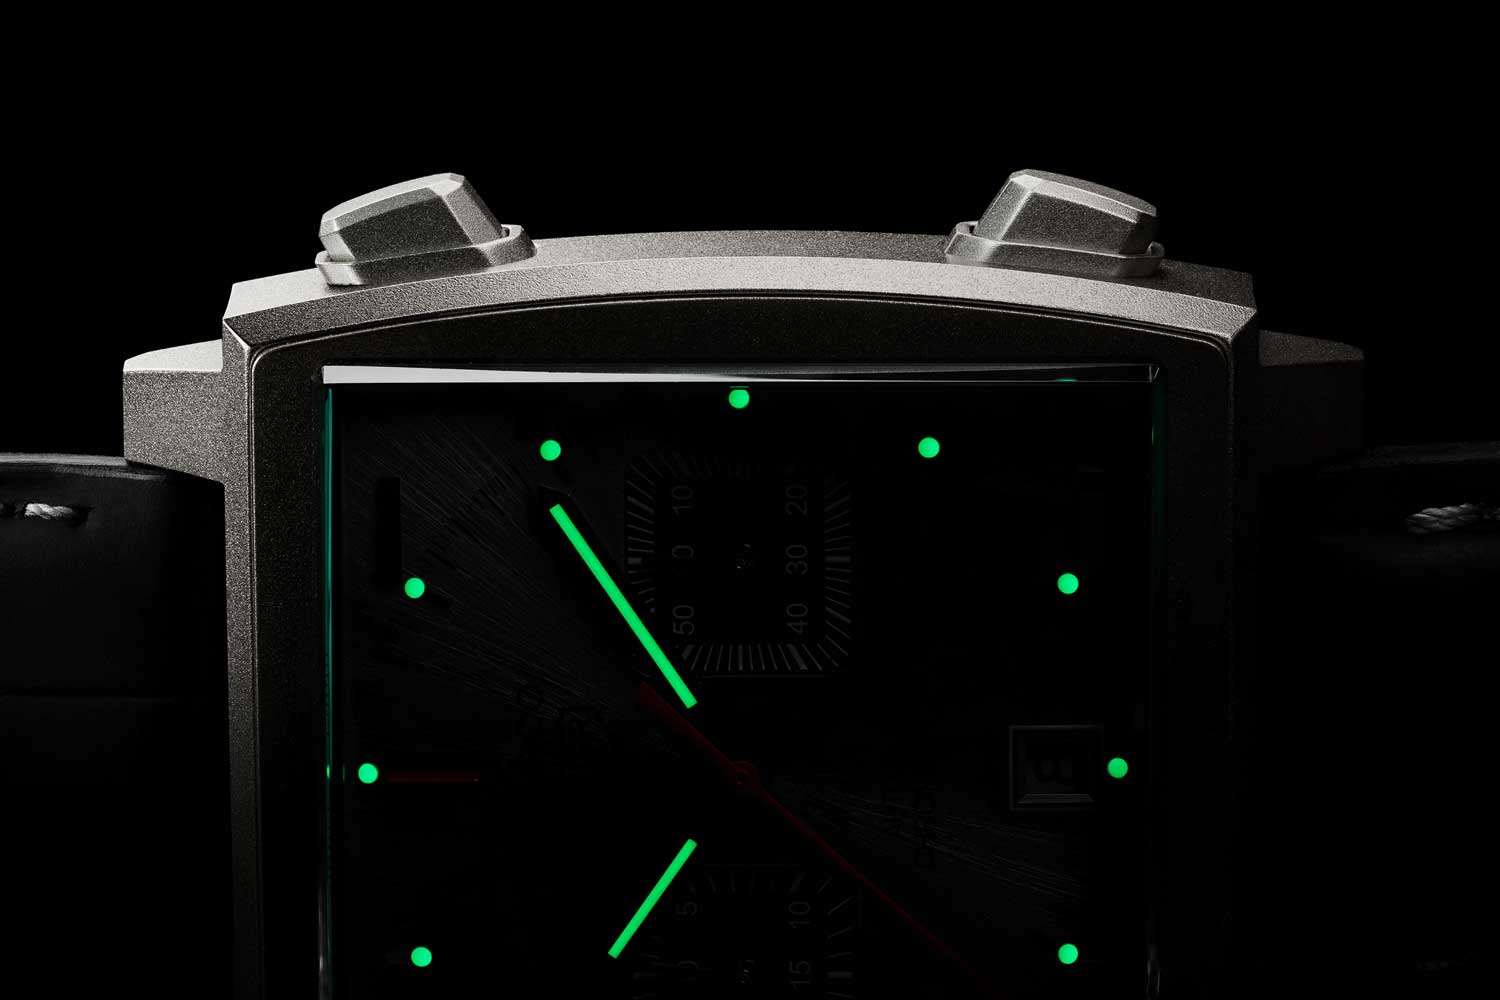 The indexes and sub-dials are coated with Super-LumiNova® to ensure optimum visibility in any condition